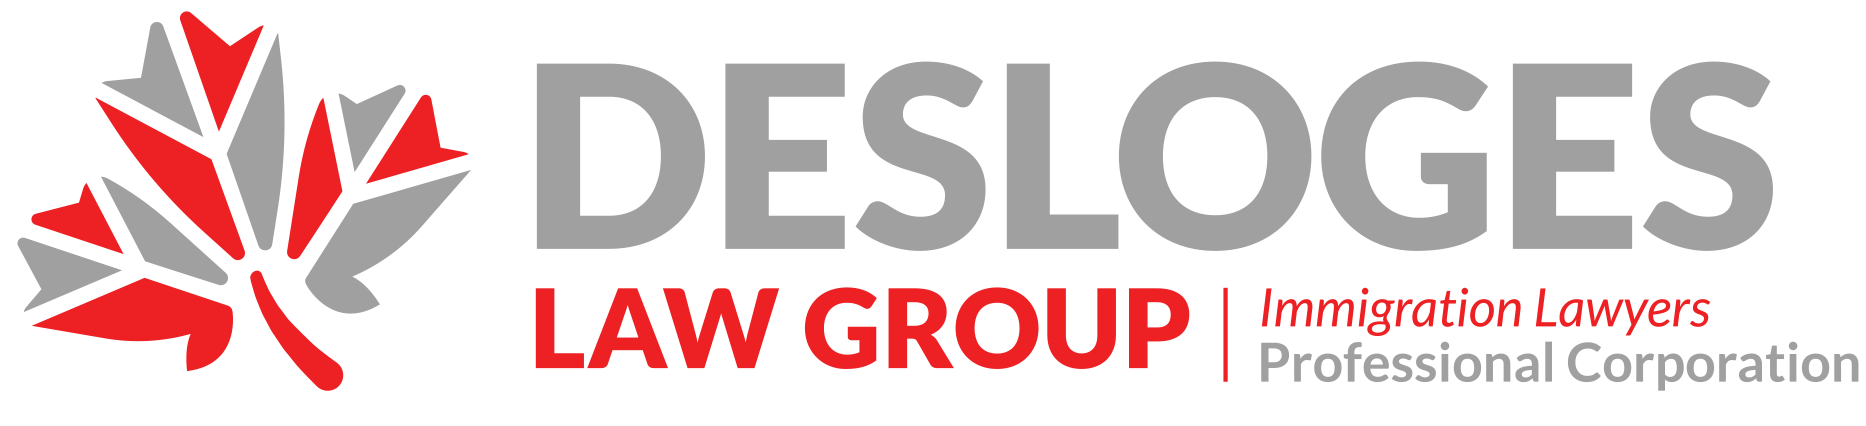 Desloges Law Group Professional Corporation